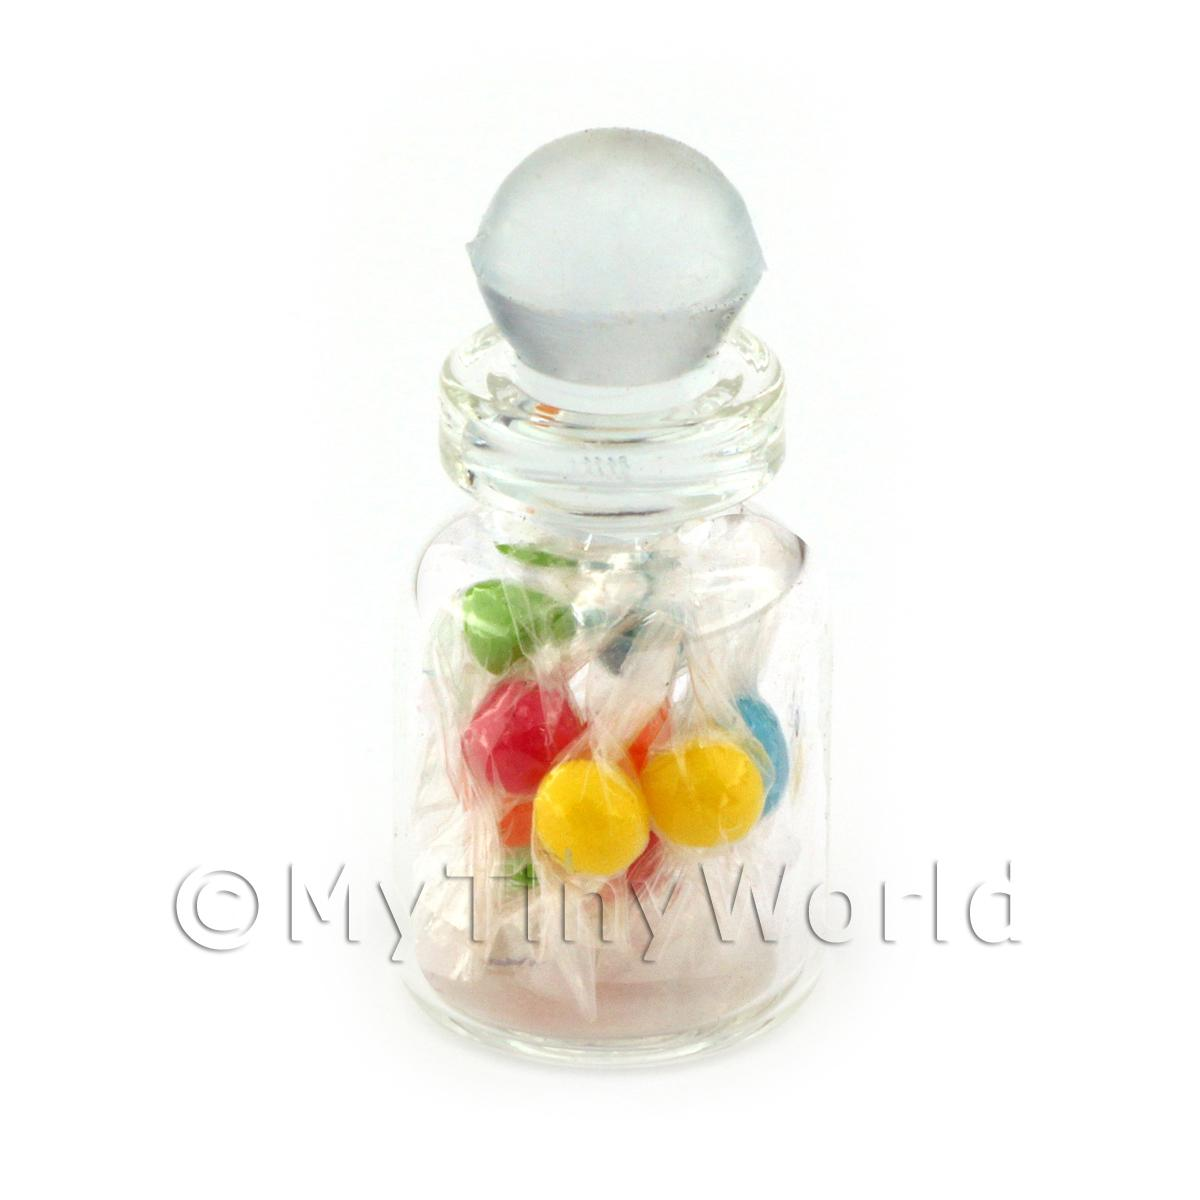 Miniature Handmade Mixed Boiled Sweets In A Glass Jar